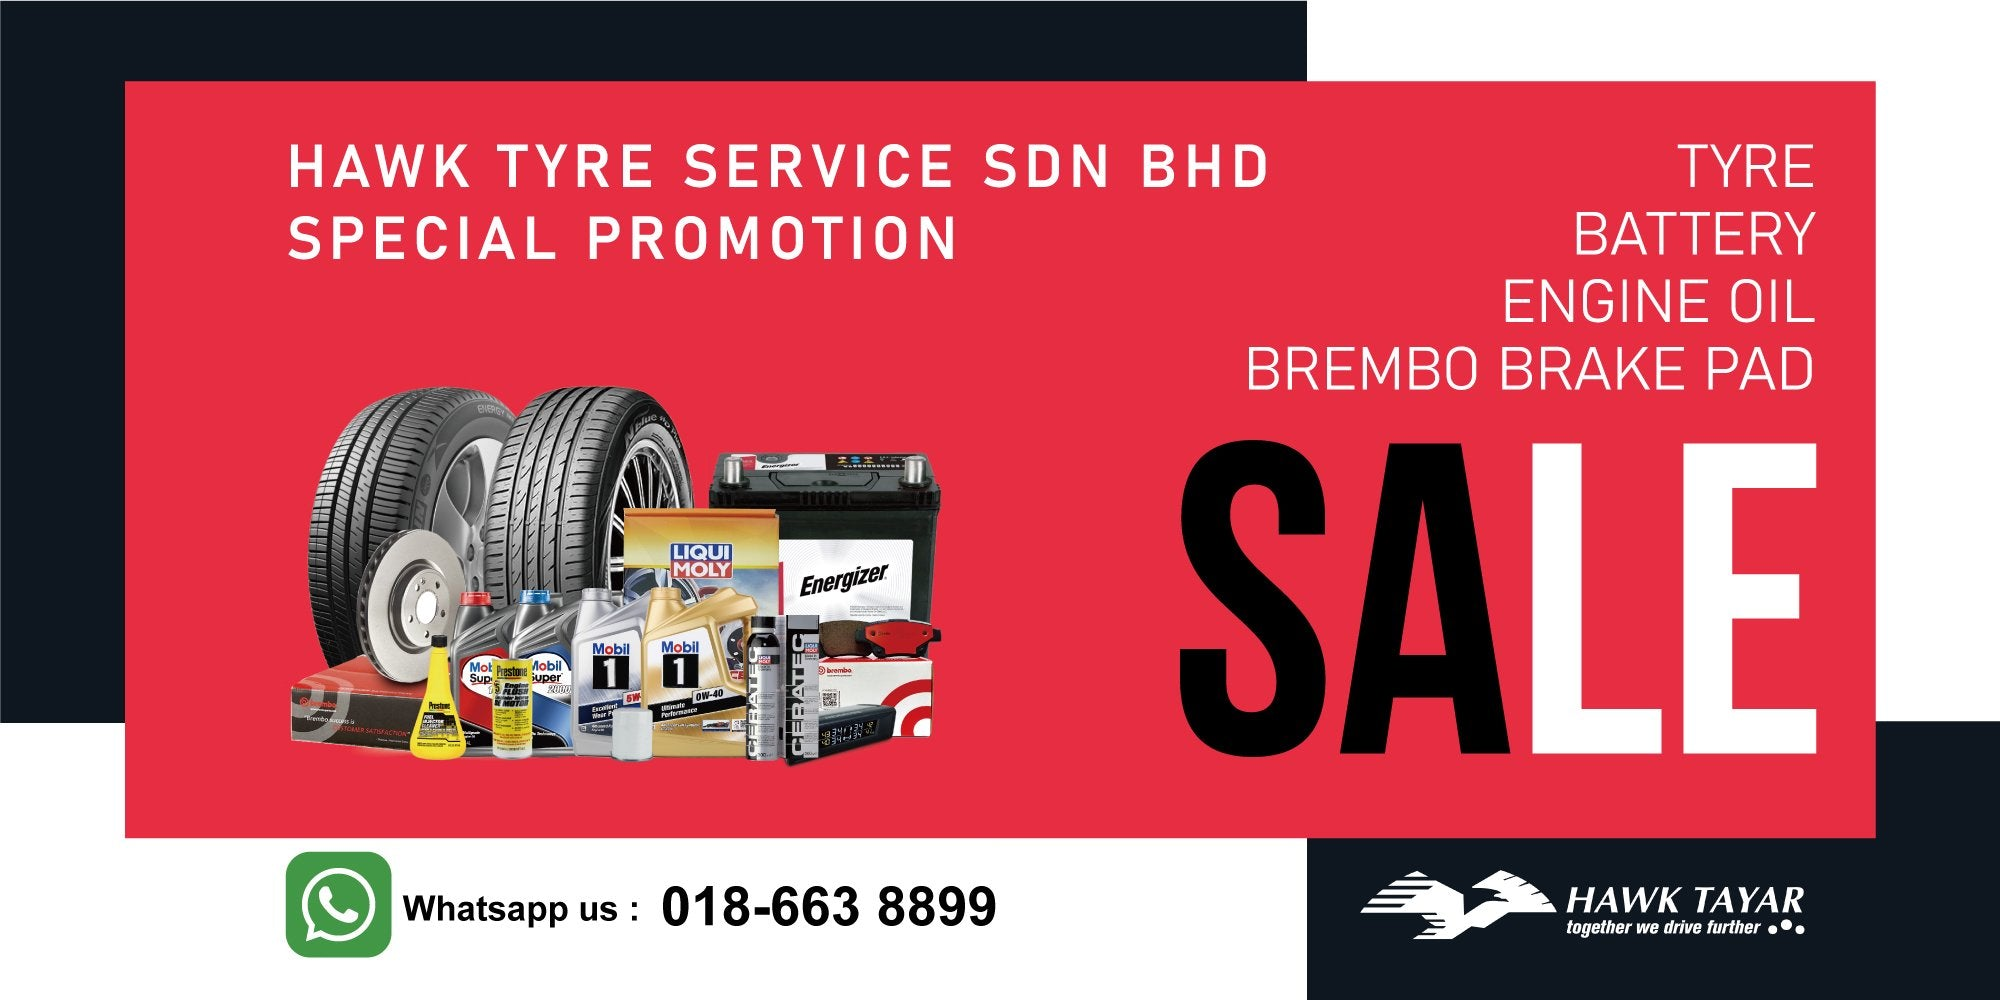 Hawk Tyre August 2019 Promotion extended until 30 september 2019